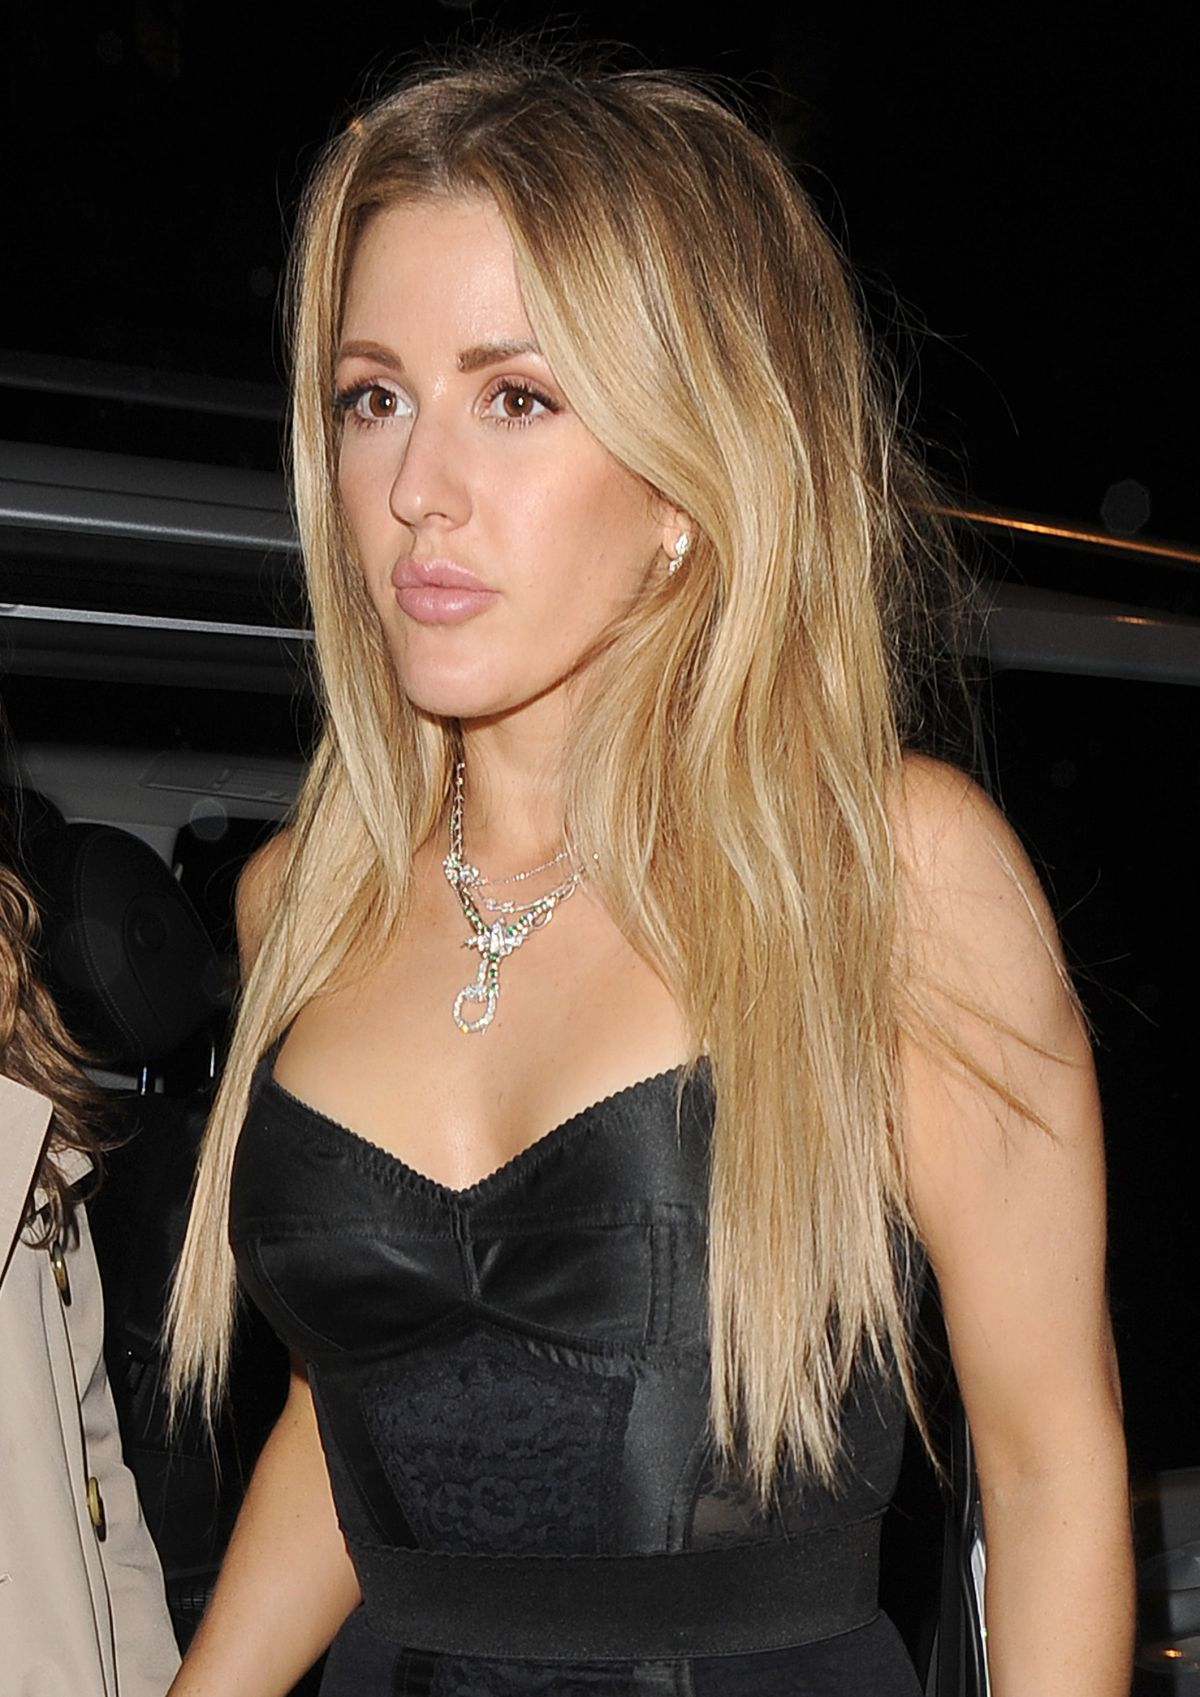 Ellie Goulding At Universal & Warner Music Afterparty ...